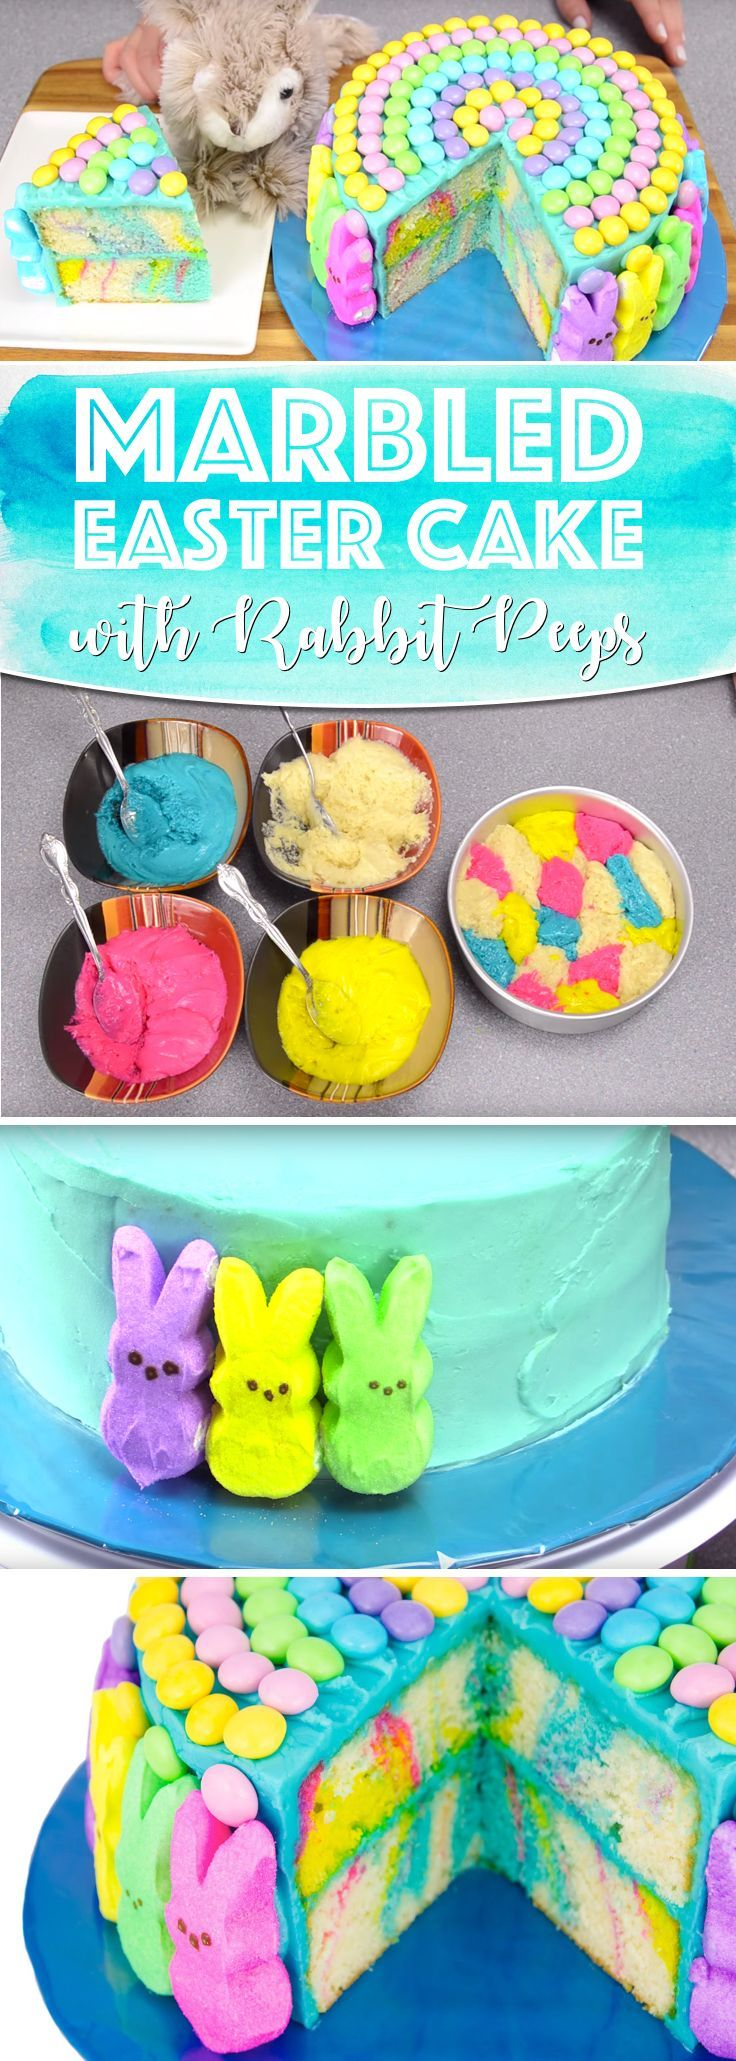 Marbled Easter Cake Adorned with Marshmallow Peeps is Everything The Festival Needs!